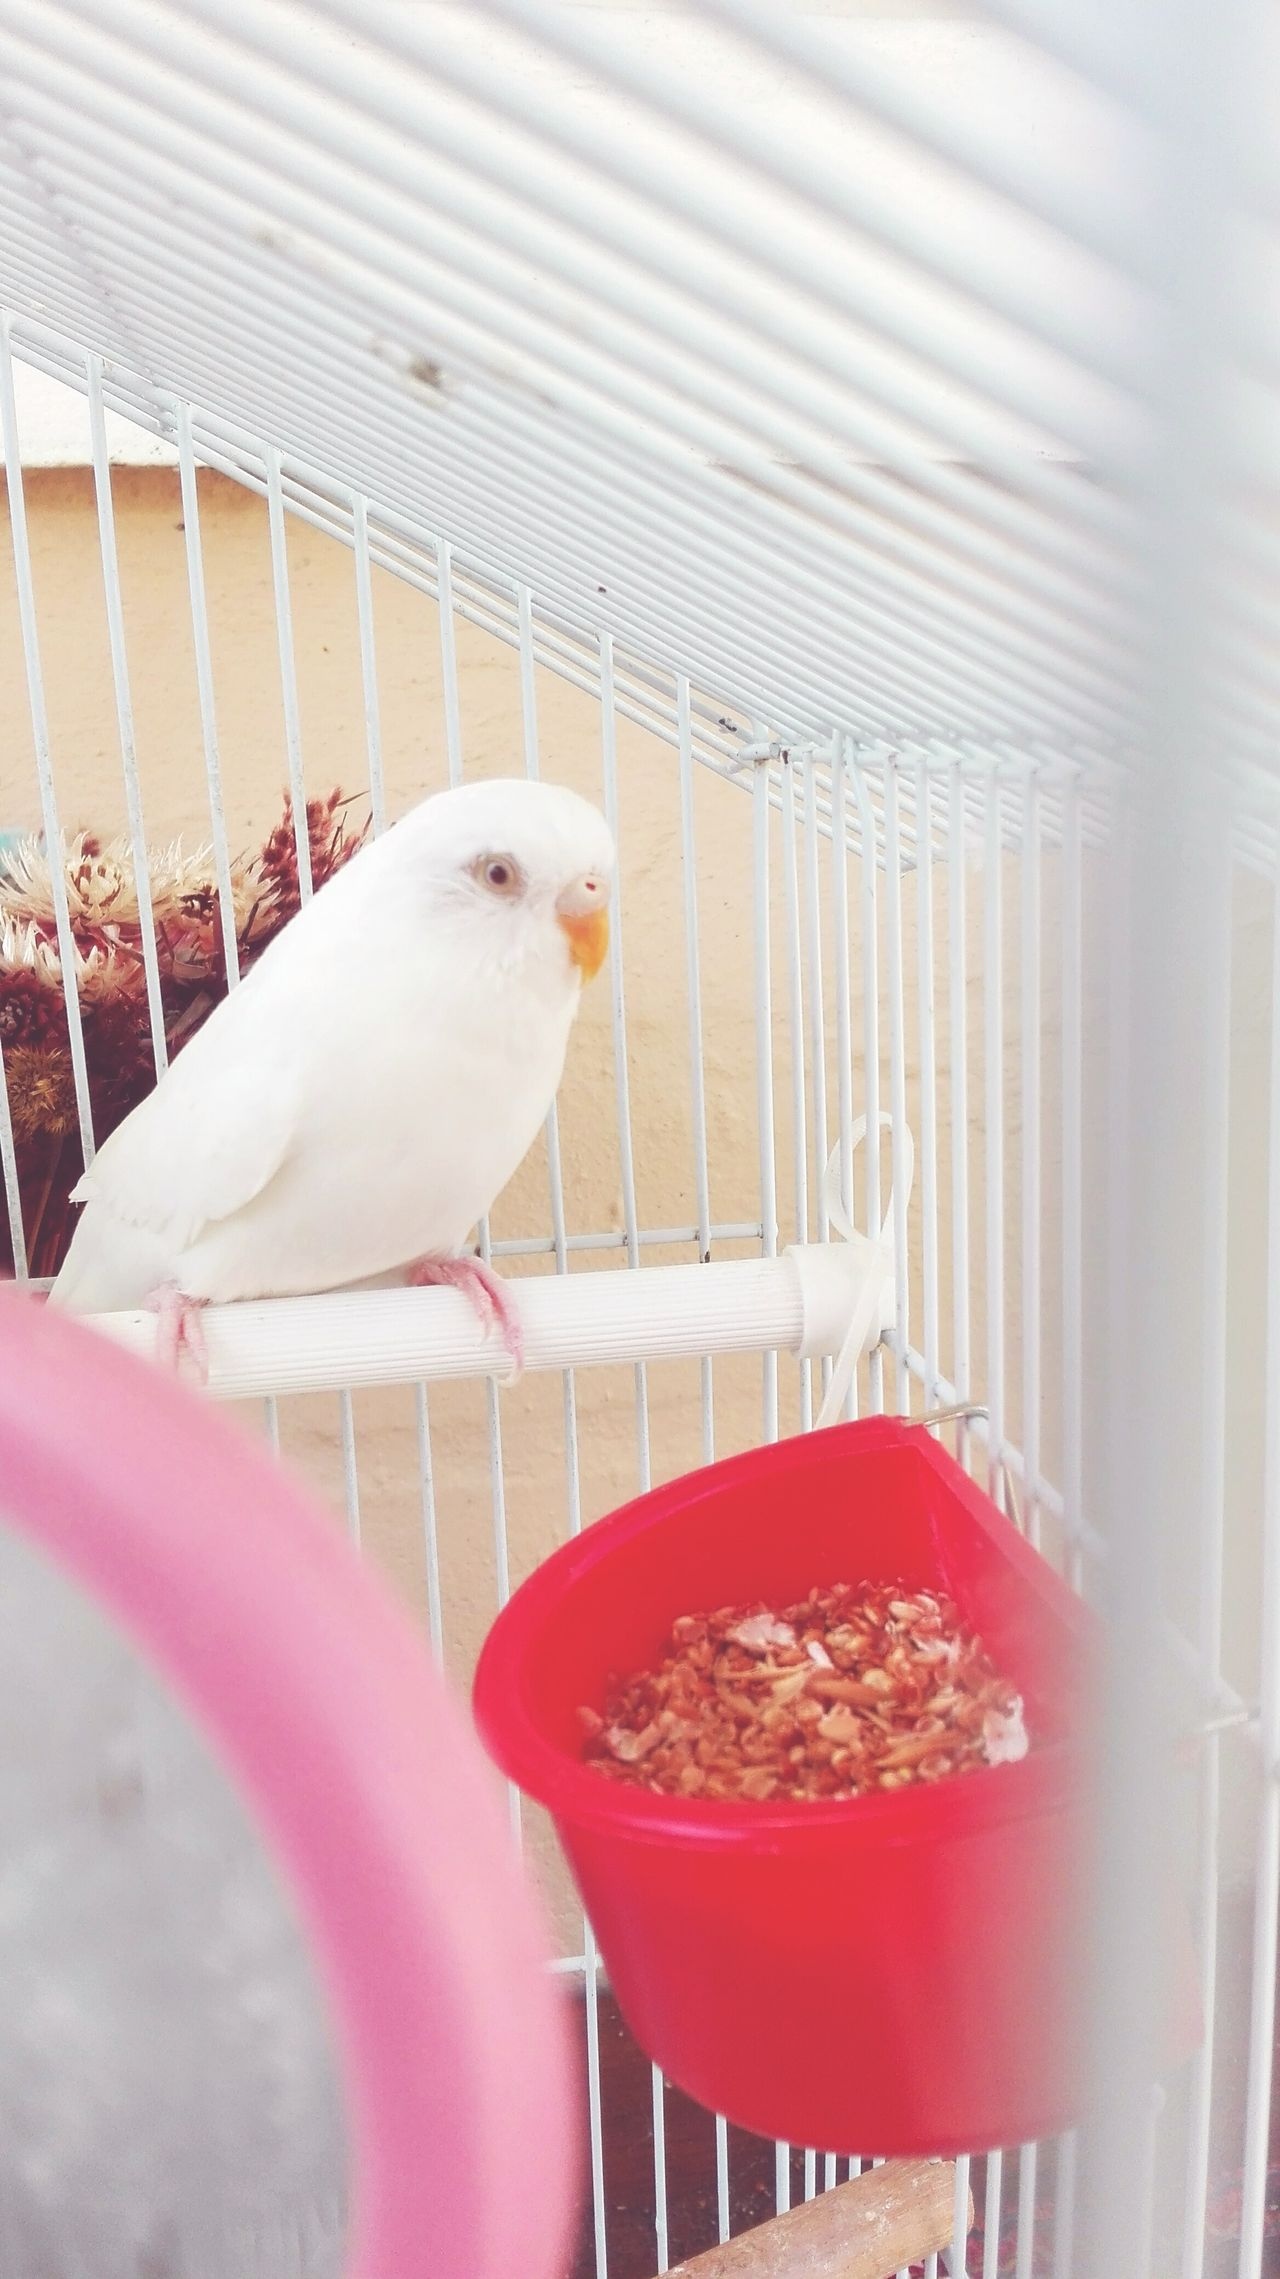 Bird Trapped Cage Animal Themes No People Birdcage Animal Wildlife Indoors  One Animal Pets Budgerigar Day EyeEmNewHere Alone But Not Lonely Mindful